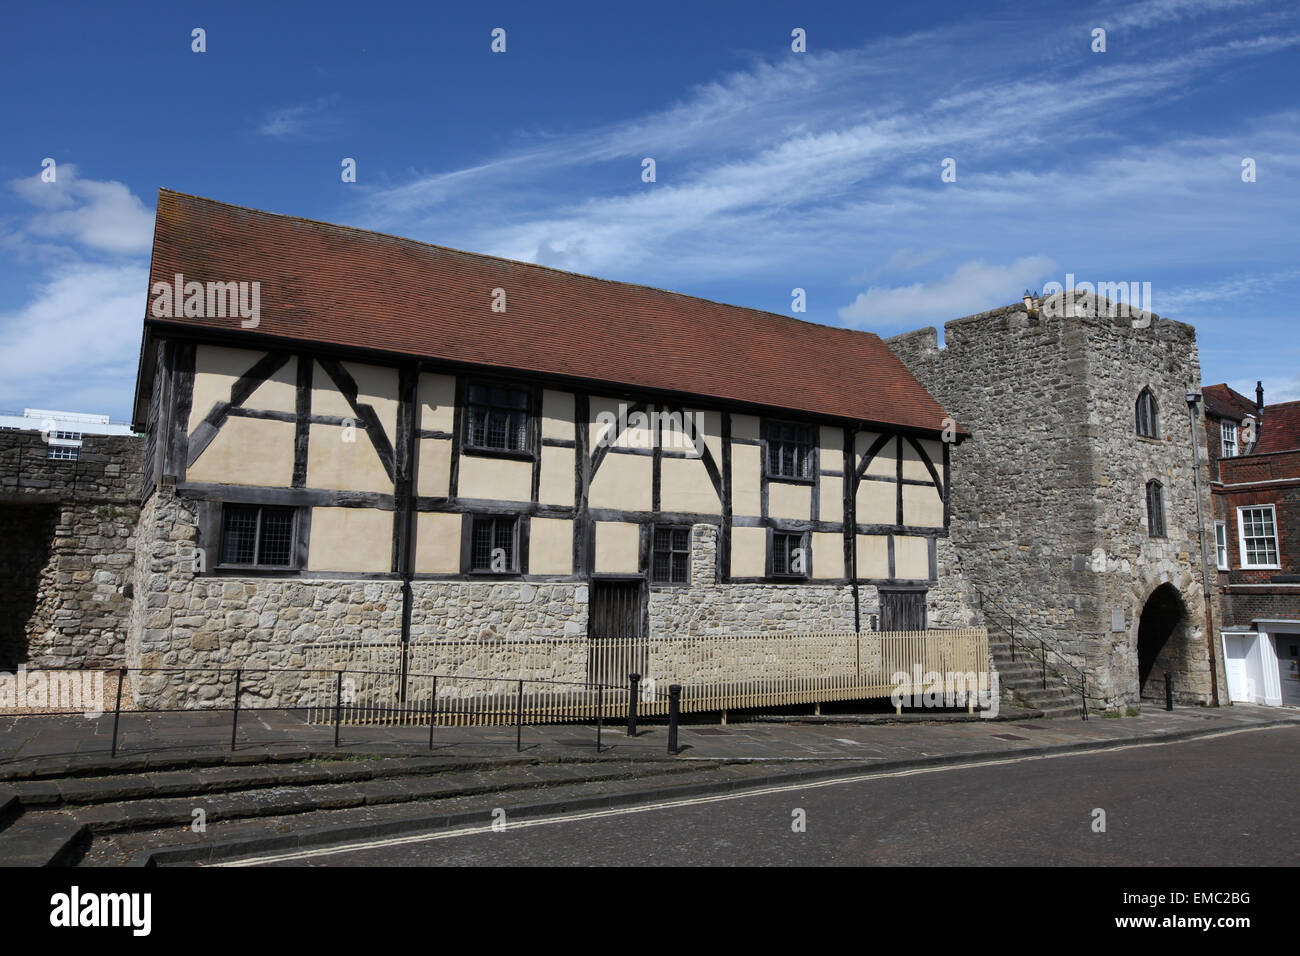 Westgate Hall Southampton formerly known as Tudor Merchants Hall in Southampton old town - Stock Image